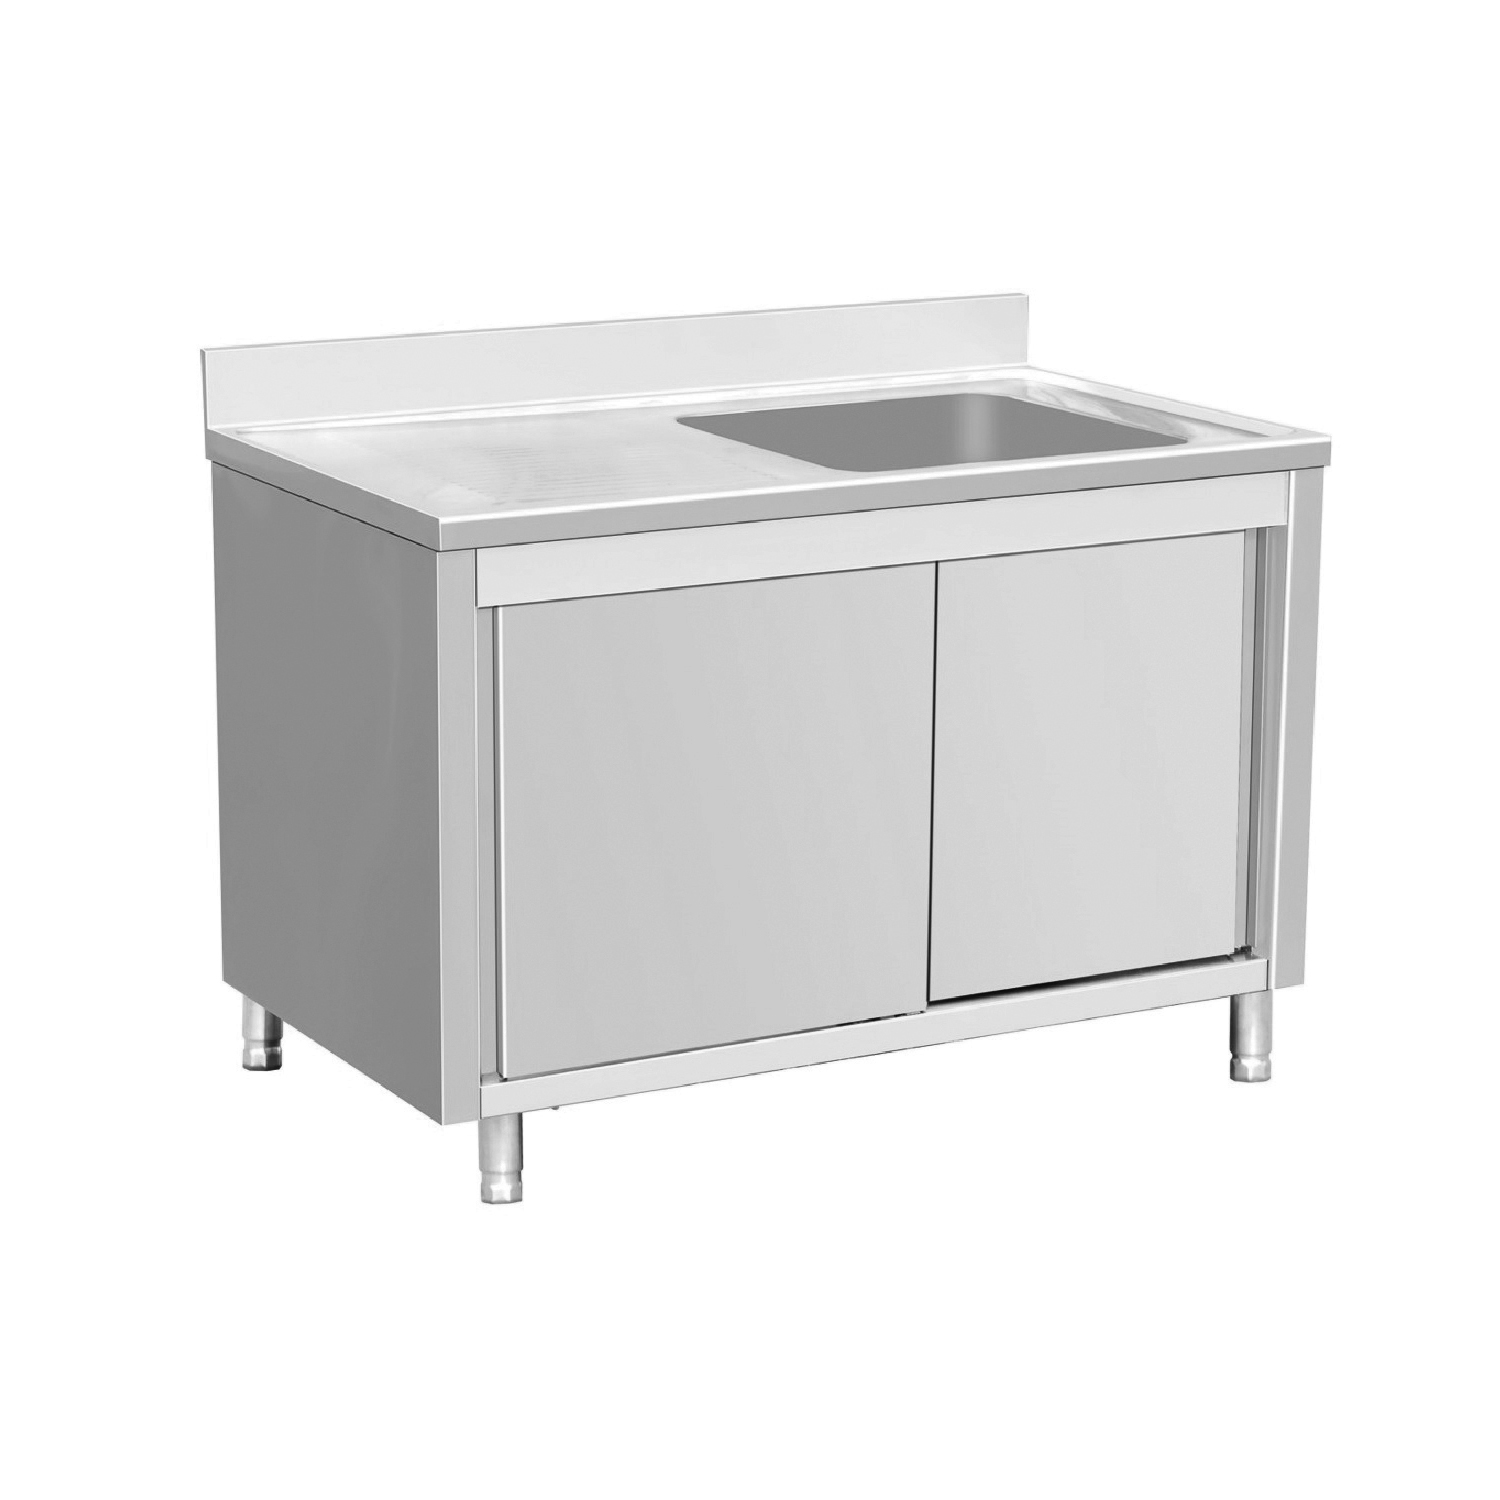 EQ Commercial Stainless Steel Work Table Cabinet Sliding  : SSR146BL1 1 from ebay.com size 1500 x 1500 jpeg 287kB